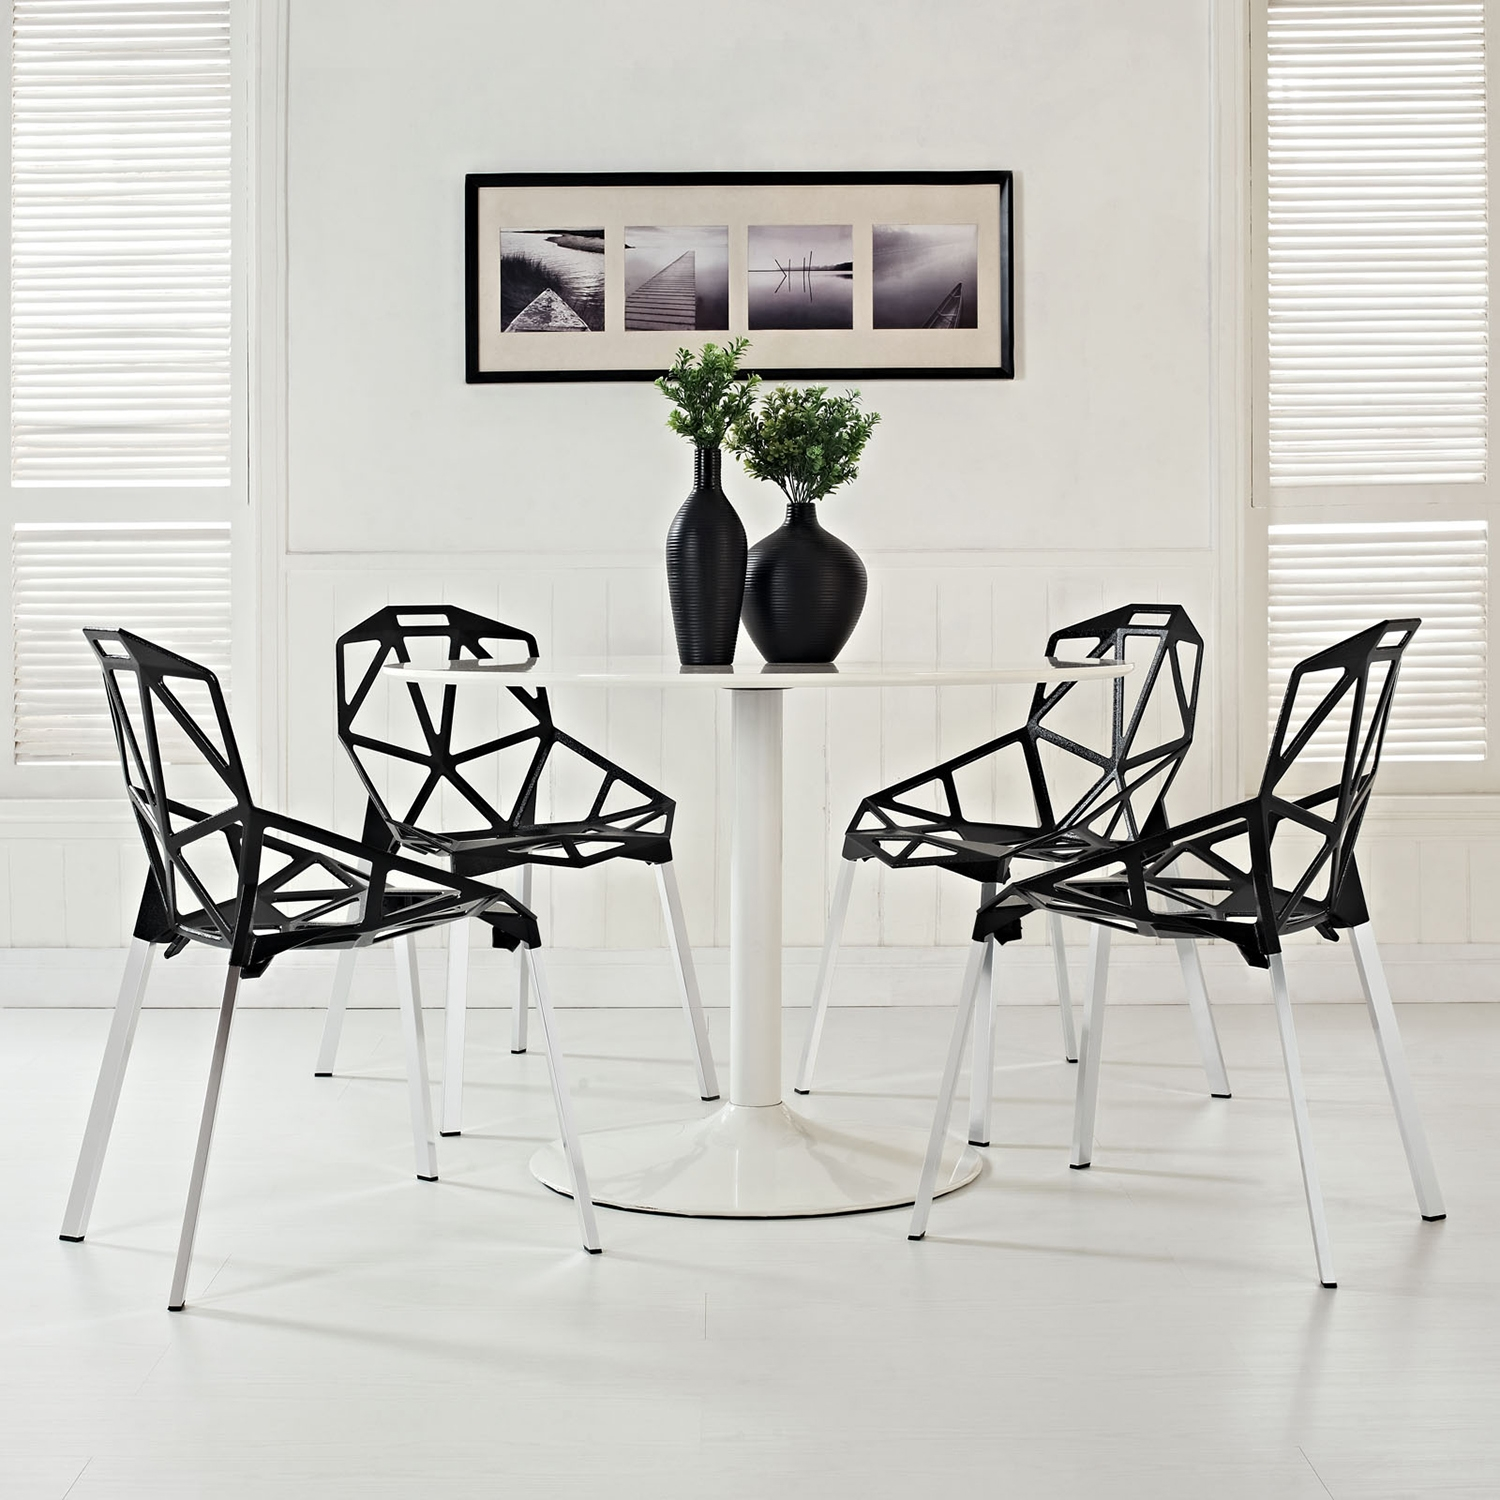 Connections Backrest Dining Chair - Black (Set of 4) - EEI-1359-BLK